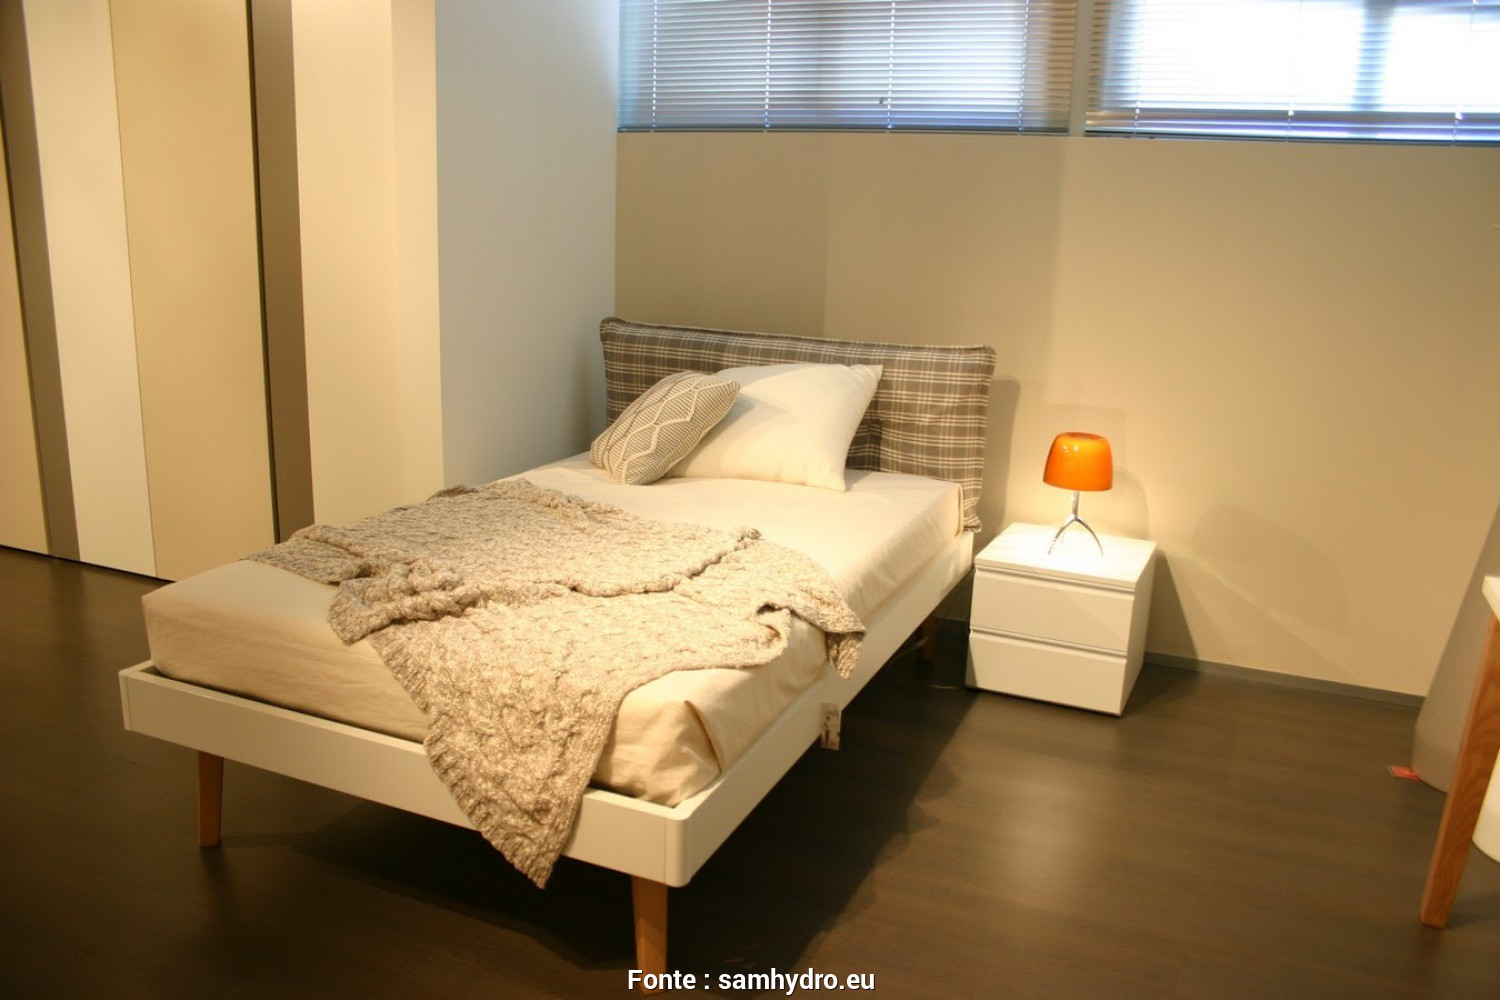 Letto A Castello Usato Lombardia.Beautiful Letti A Castello Usati Contemporary Home Design